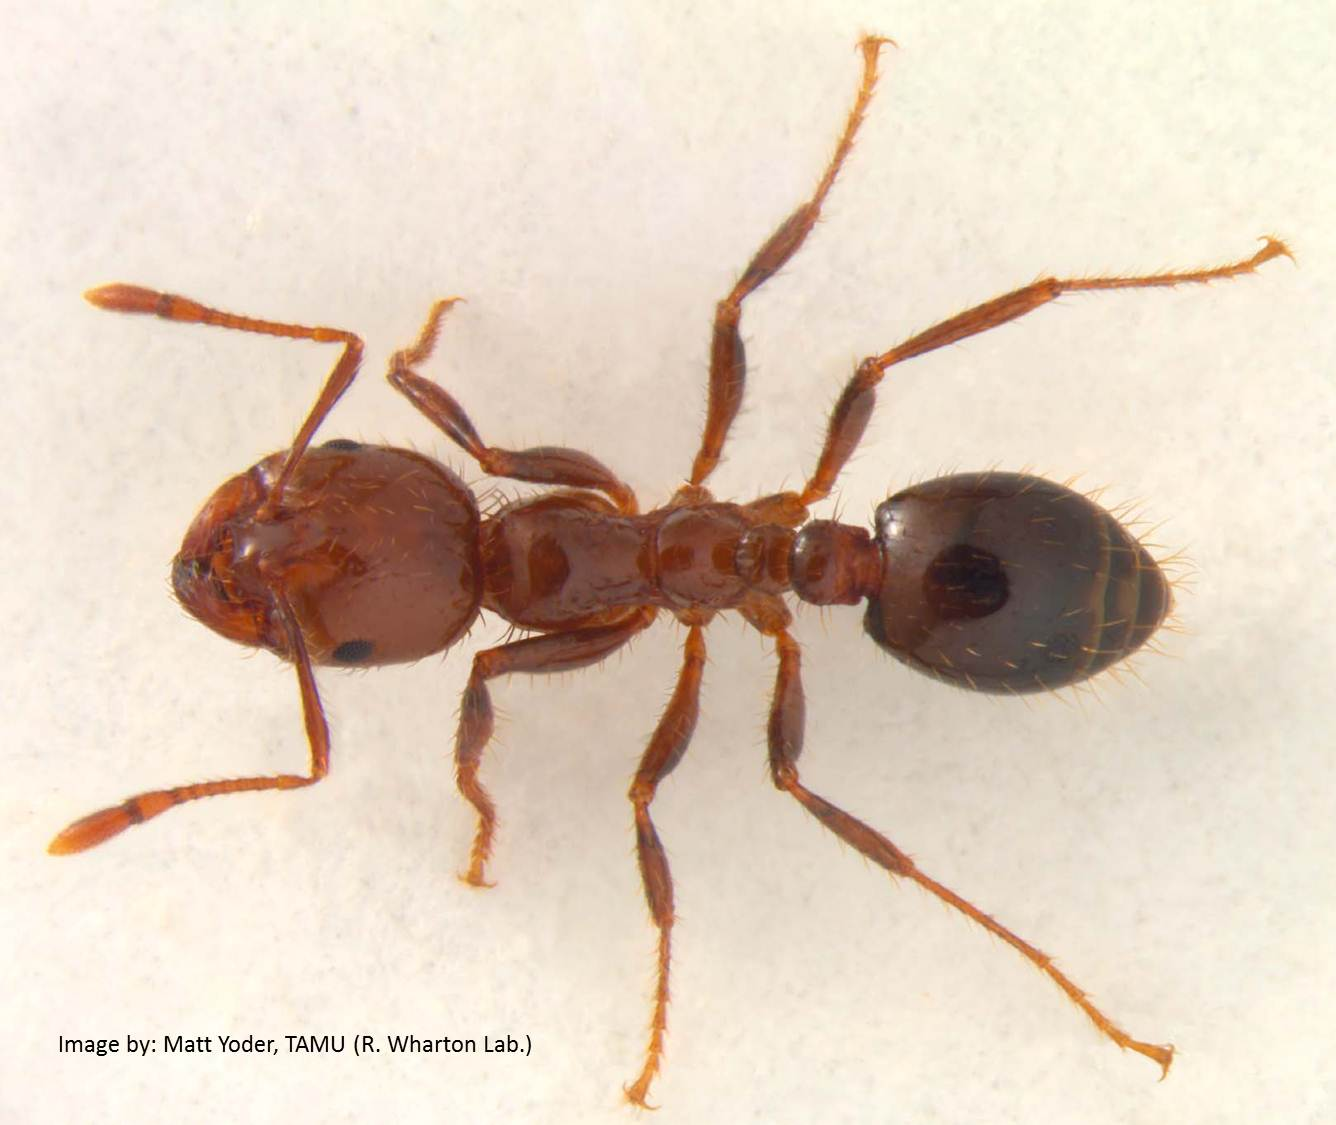 fire ants Find out what fire ants and their nests look like, and how they affect humans includes a link to a photo gallery of fire ants.